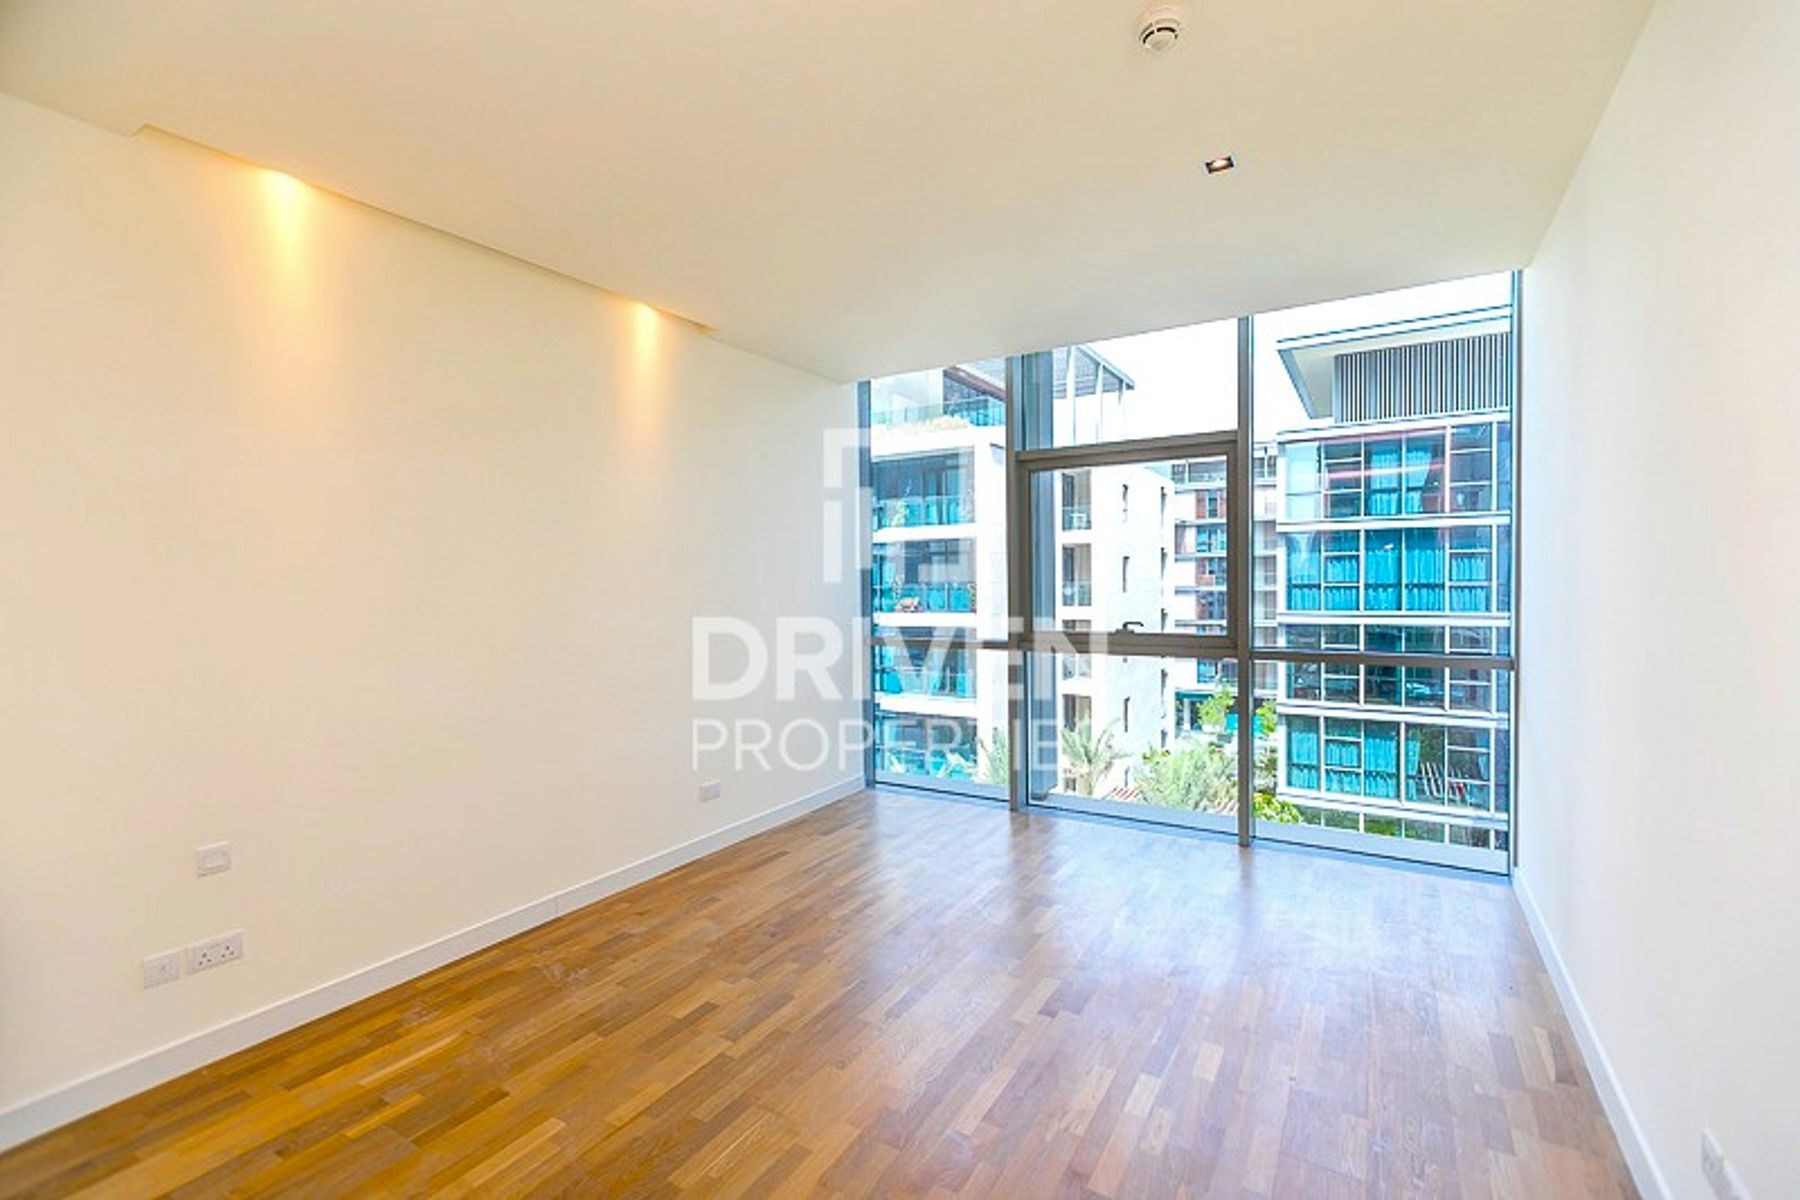 Apartment for Rent in Building 20 - City Walk